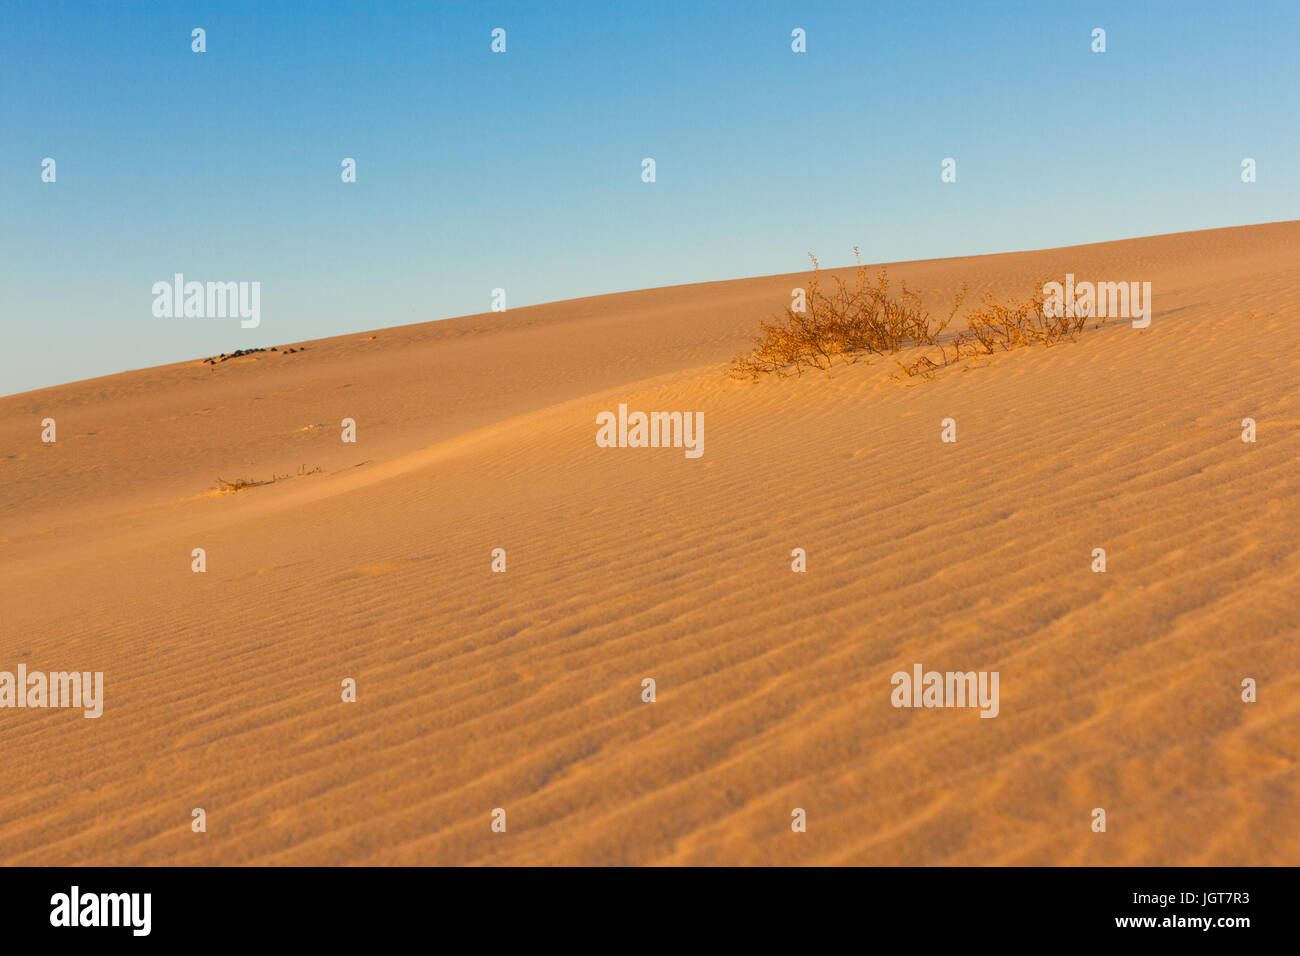 Divided photography on two part by sand and sky. Lands and panorama background. Sustainable ecosystem. Yellow dunes - Stock Image